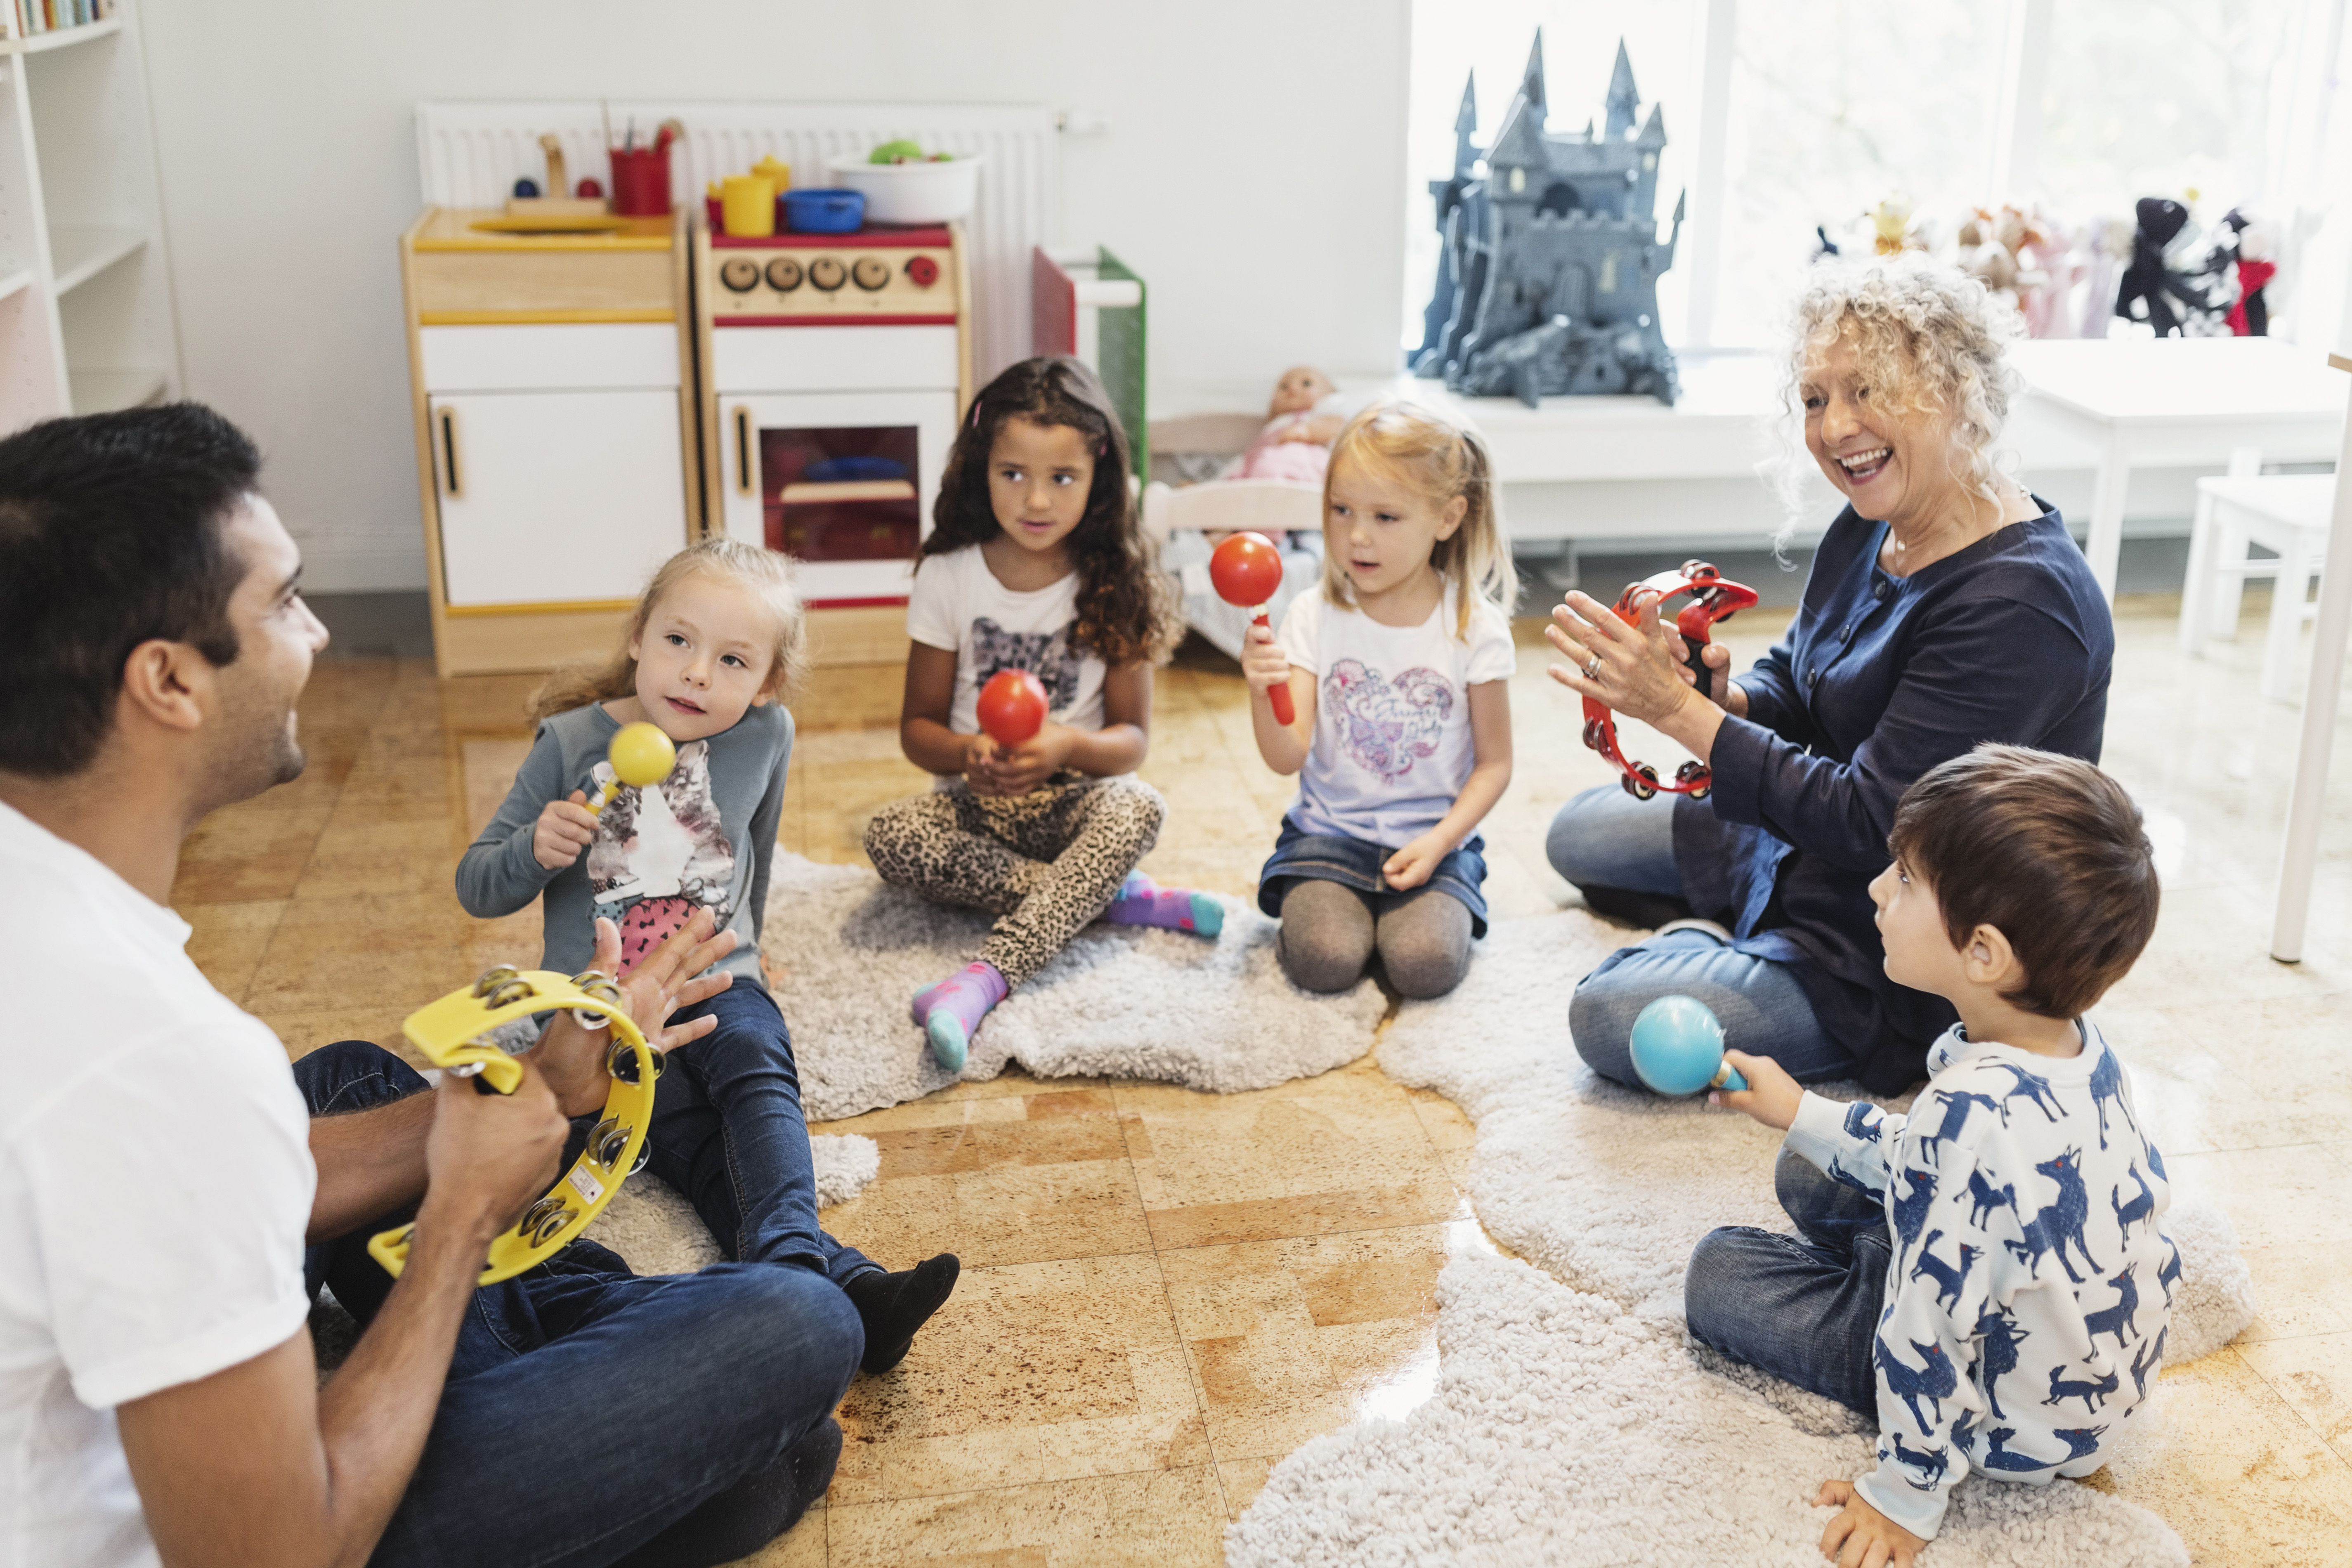 5 Musical Activities For Kids Of All Ages